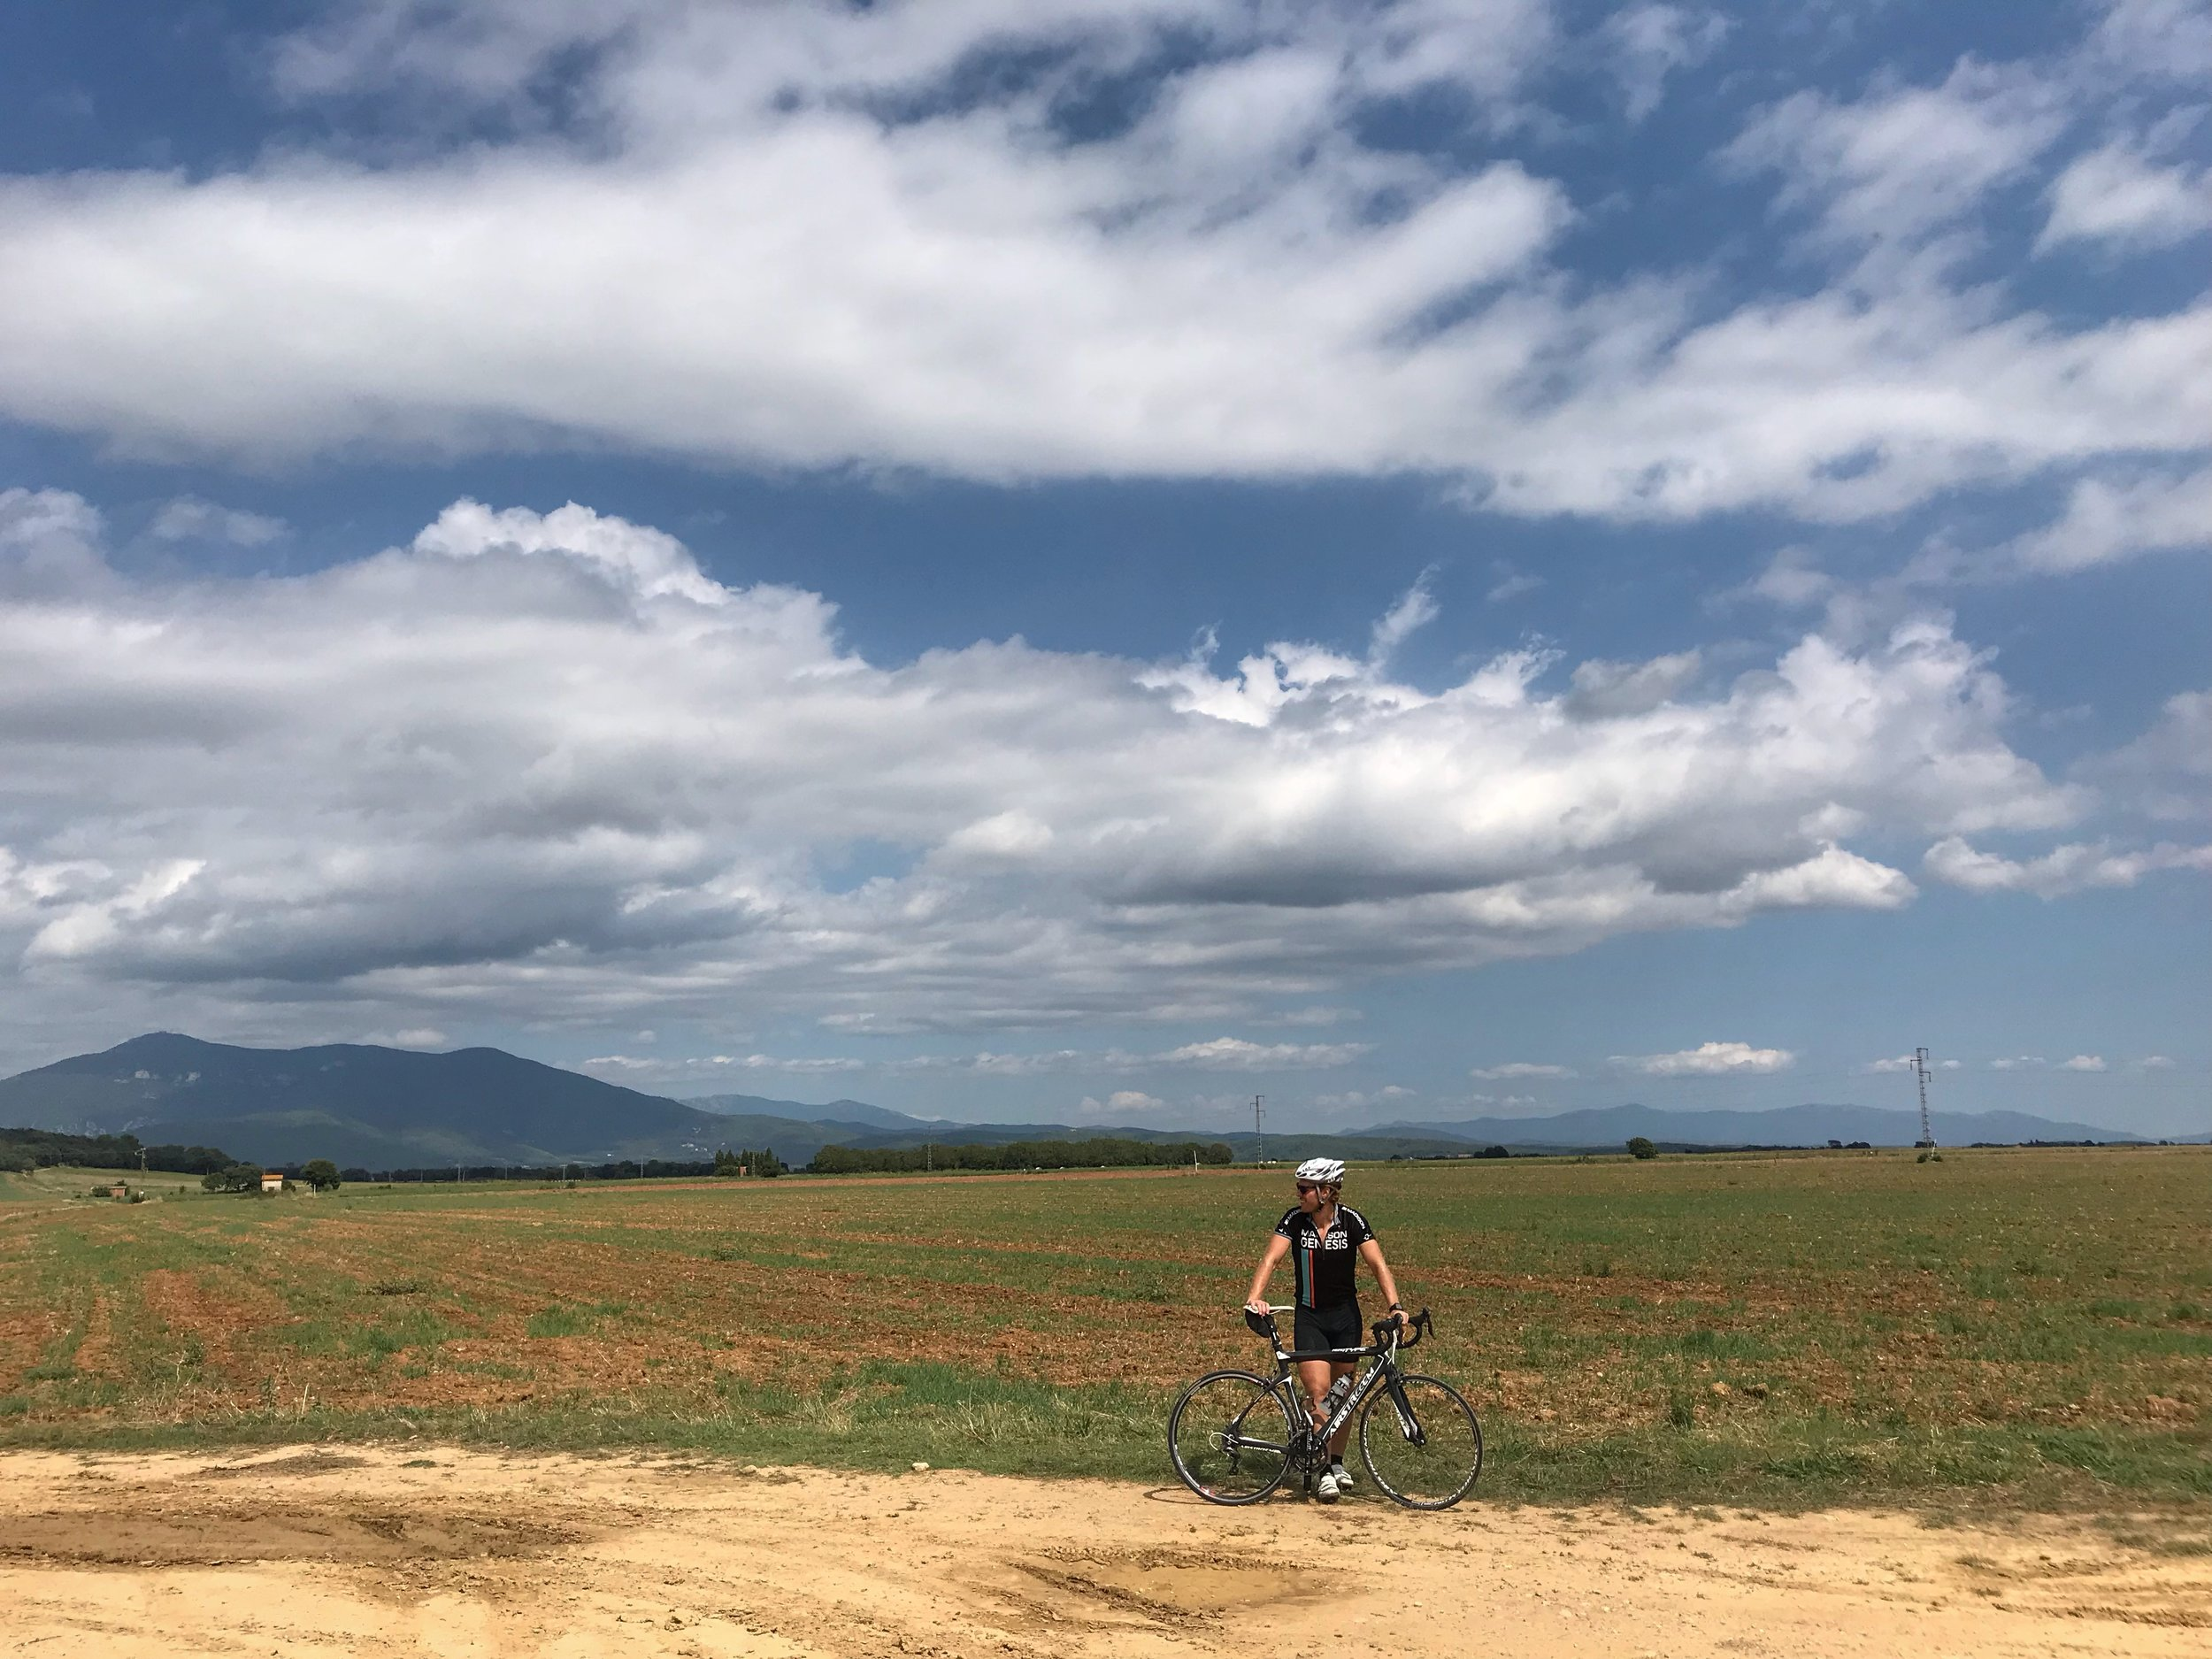 Day Trip in the girona mountains & costa brava coastline    Ancient towns and infamous cycling near Girona and some of the most breathtaking routes along the Costa Brava coastline.